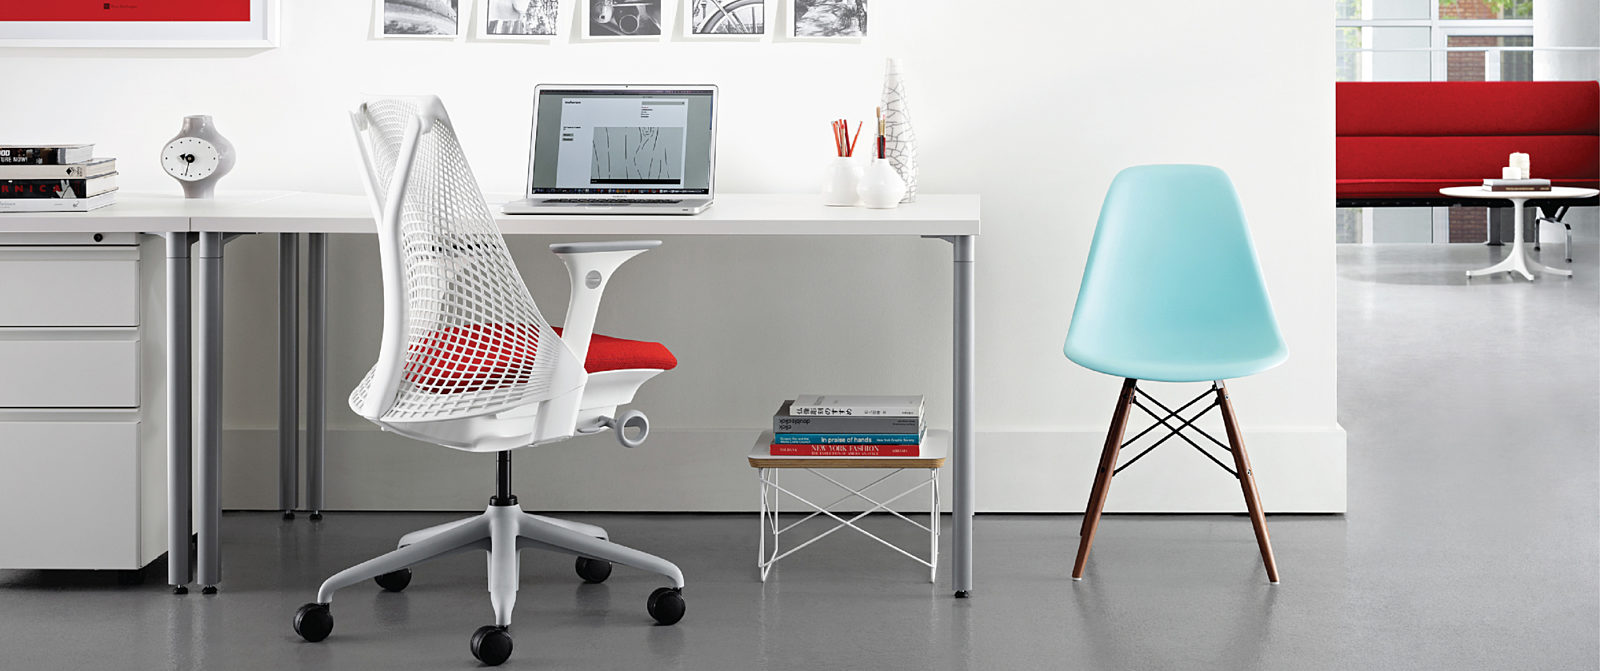 Individual workstation with ergonomic office chair and Eames molded plastic side chair.